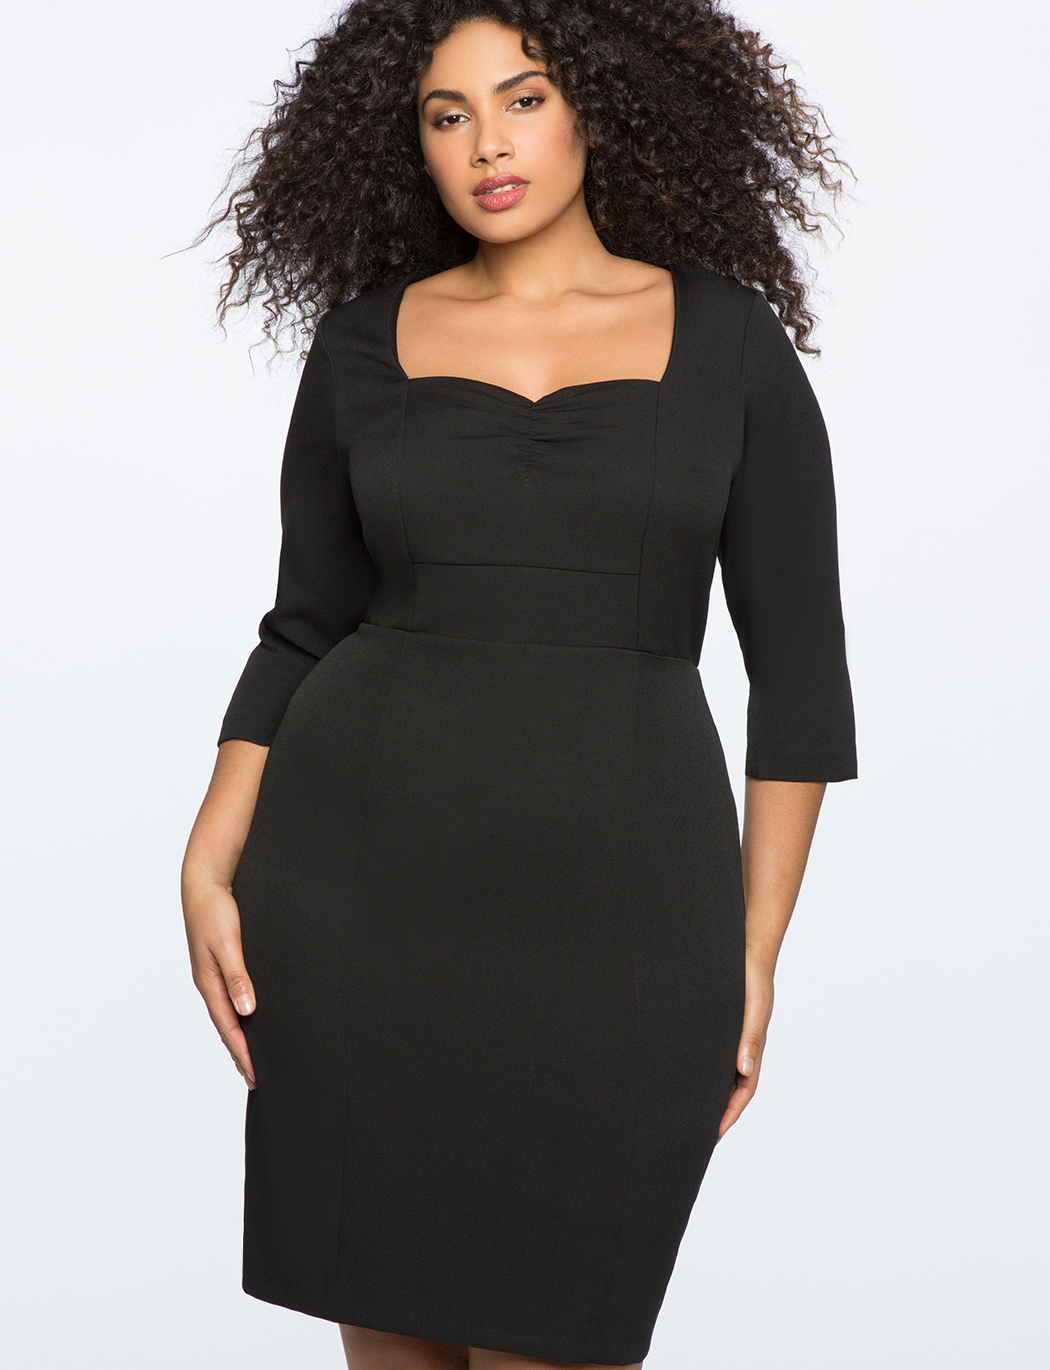 3/4 Sleeve Dress with Sweetheart Neckline | Women\'s Plus Size Dresses |  ELOQUII